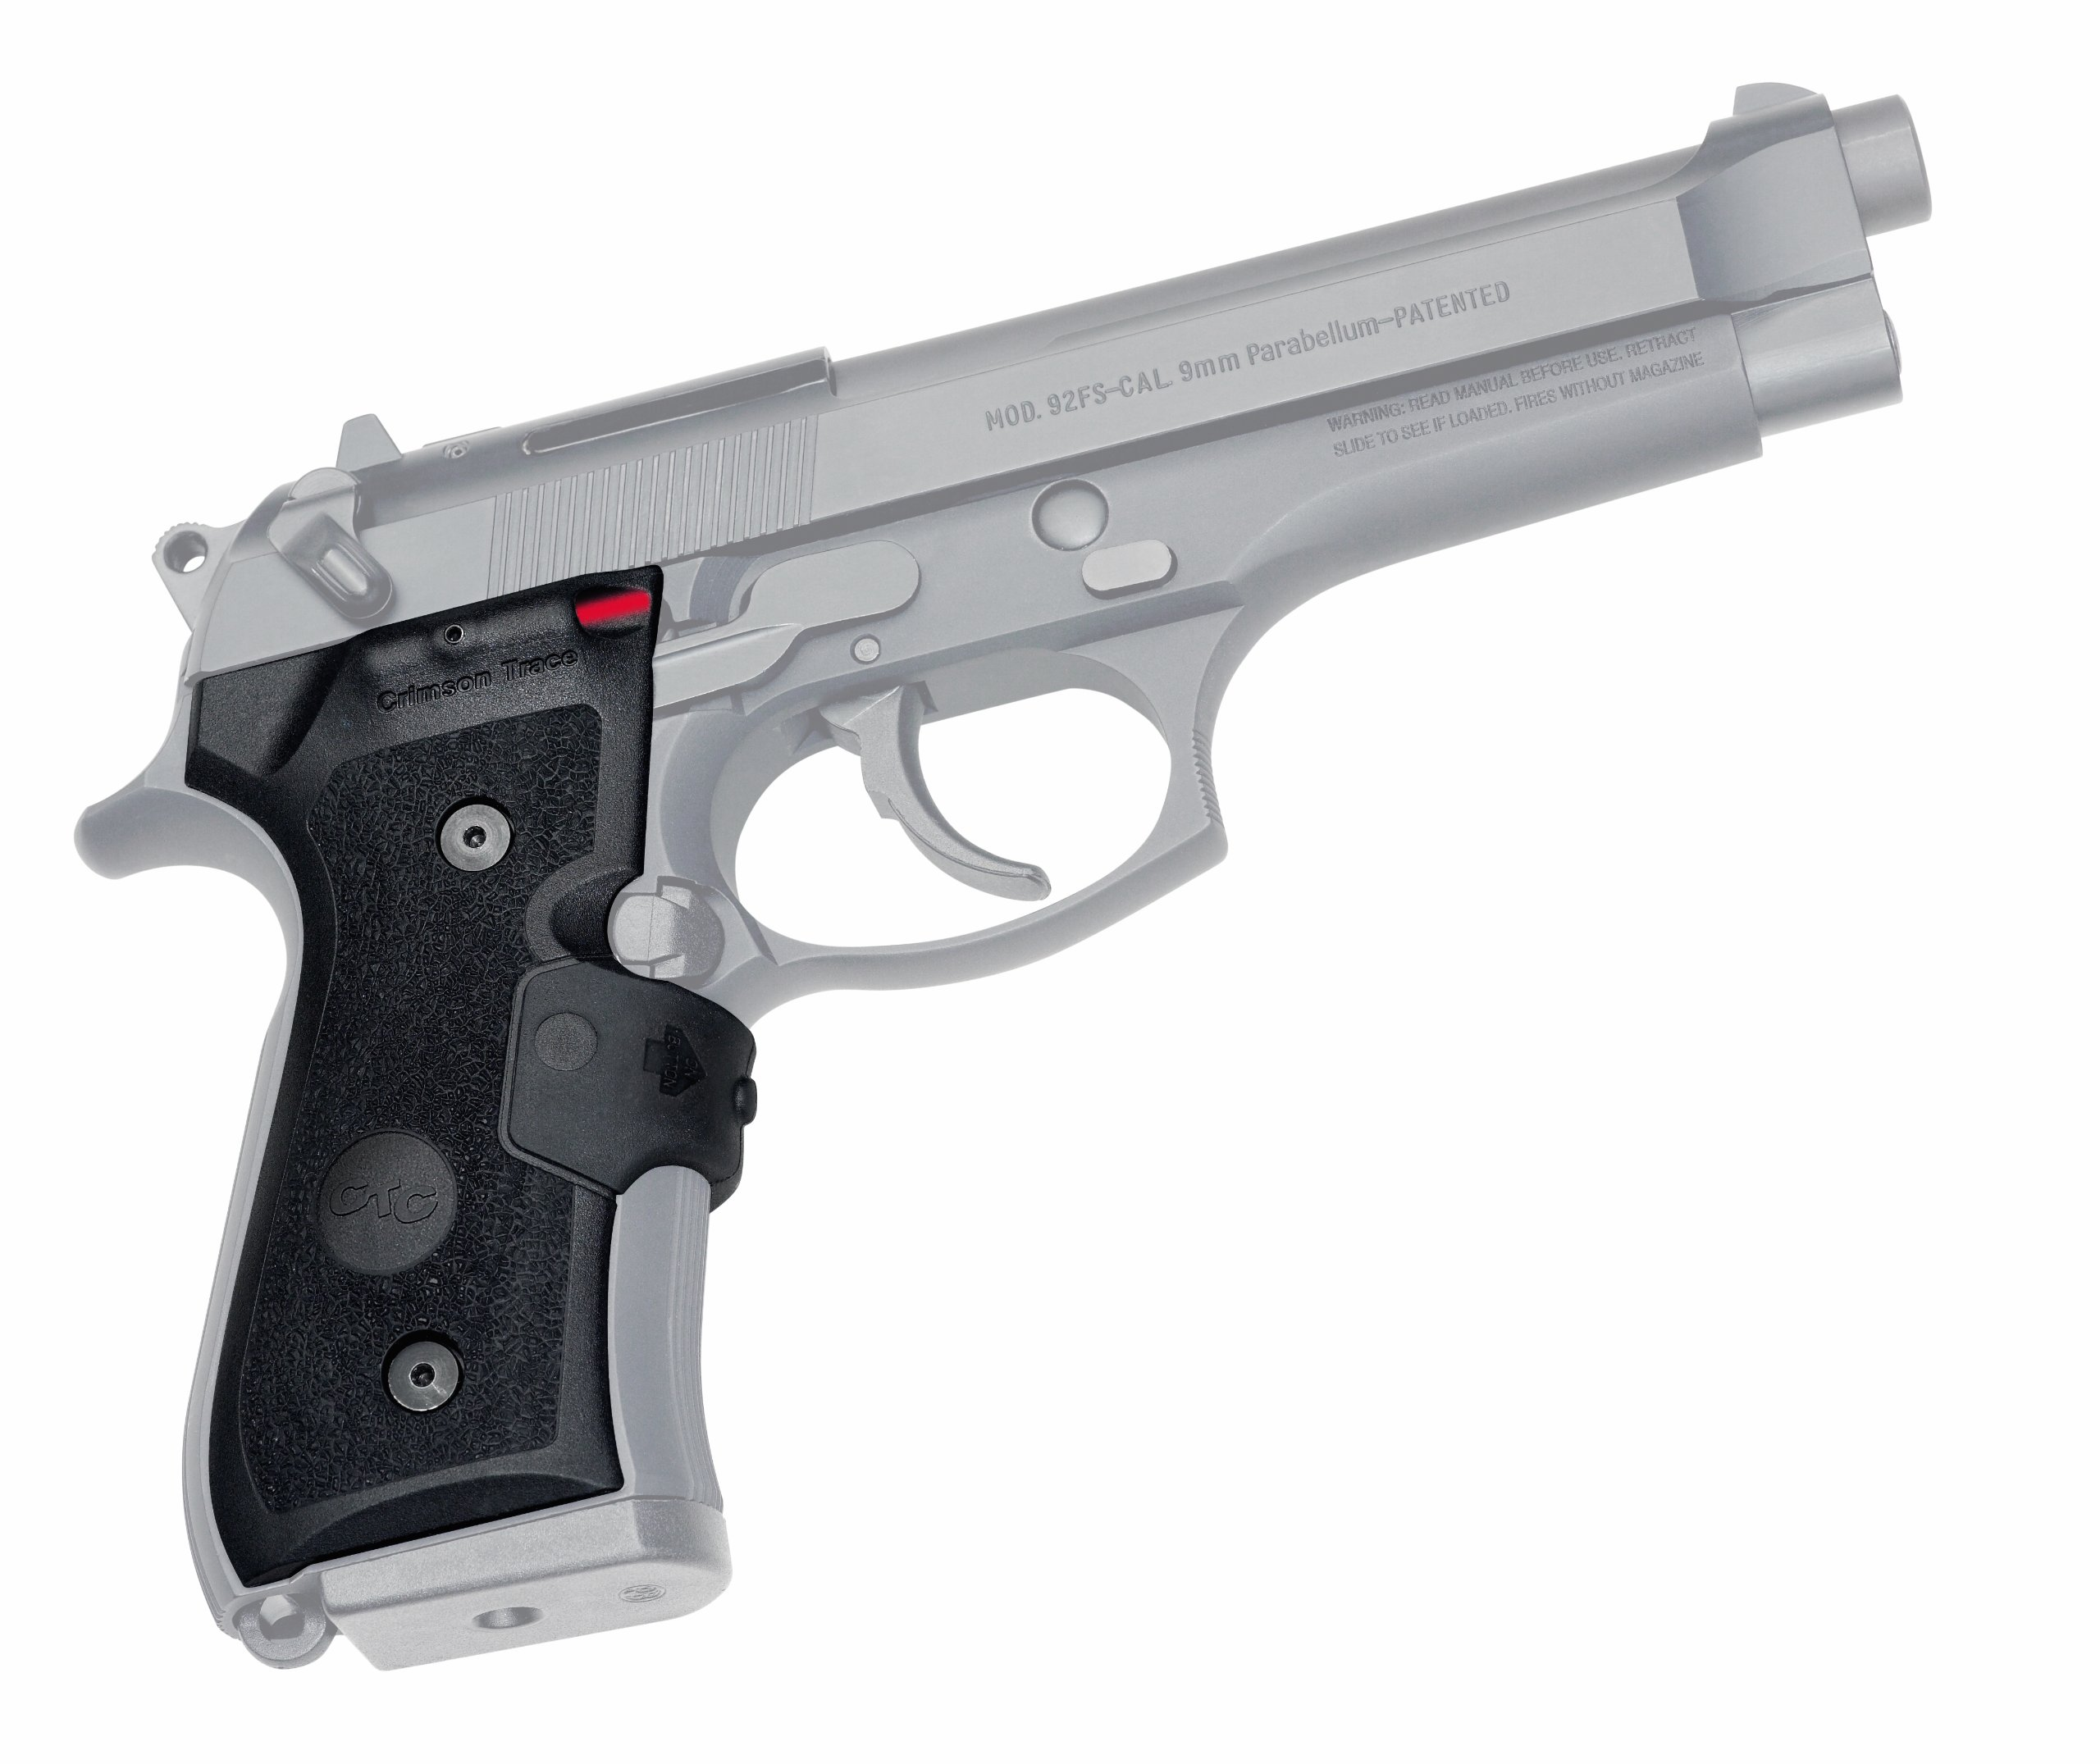 Crimson Trace LG-402-M Lasergrips Red Laser Sight Grips for Beretta 92/96/M9 Pistols - MIL-SPEC by Crimson Trace